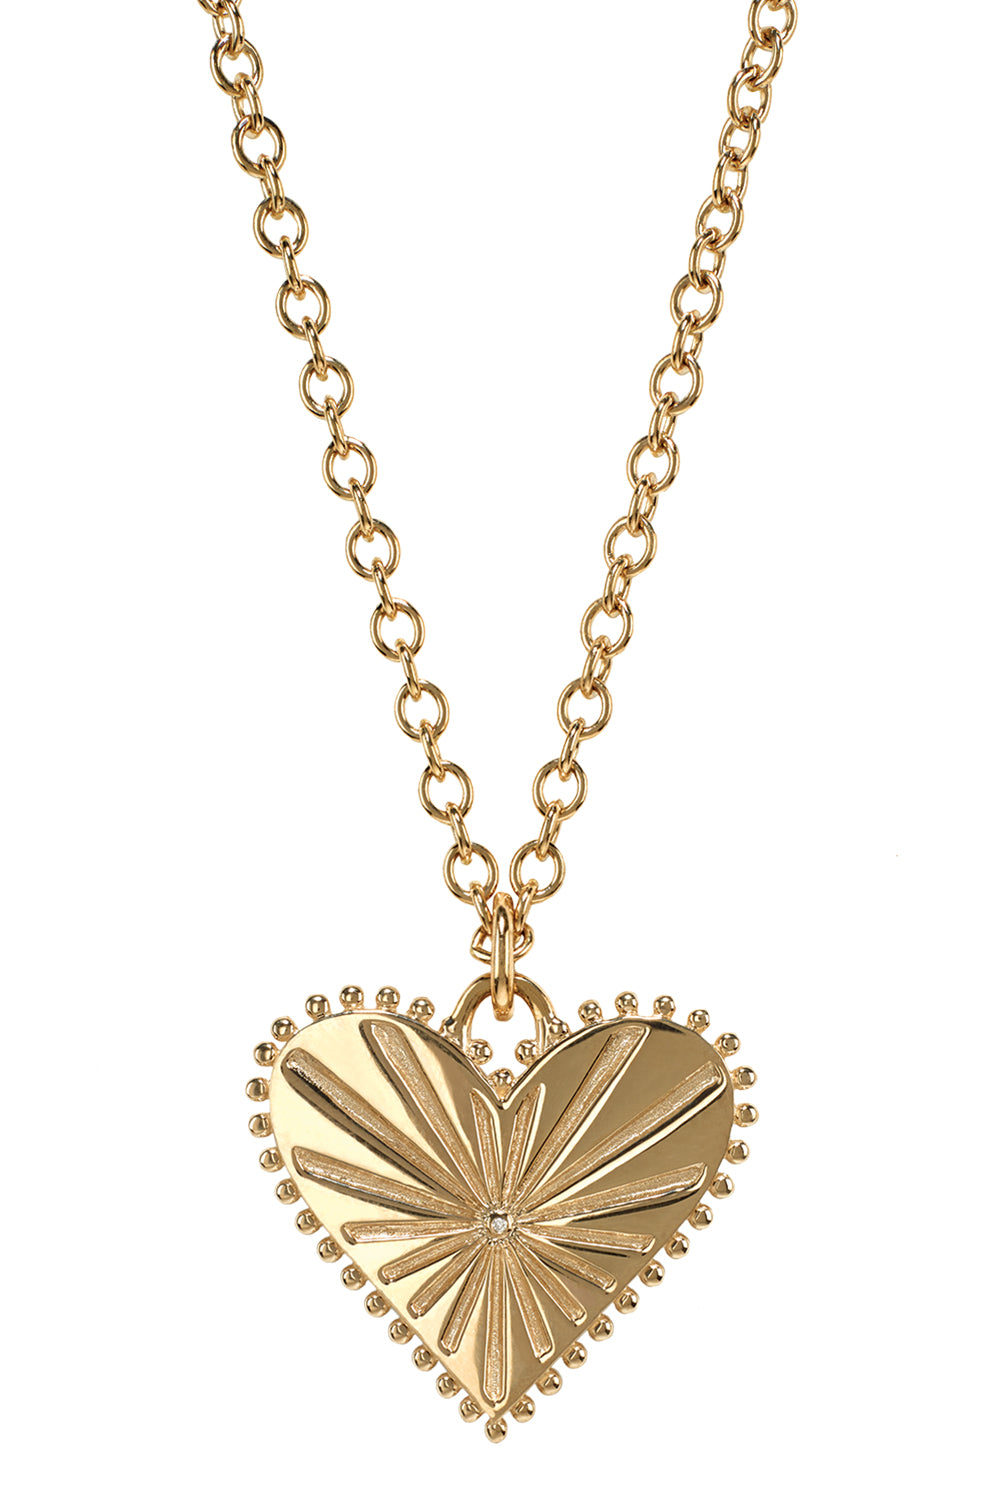 Pour Toujours Heart Coin Yellow Gold Necklace with White Diamond